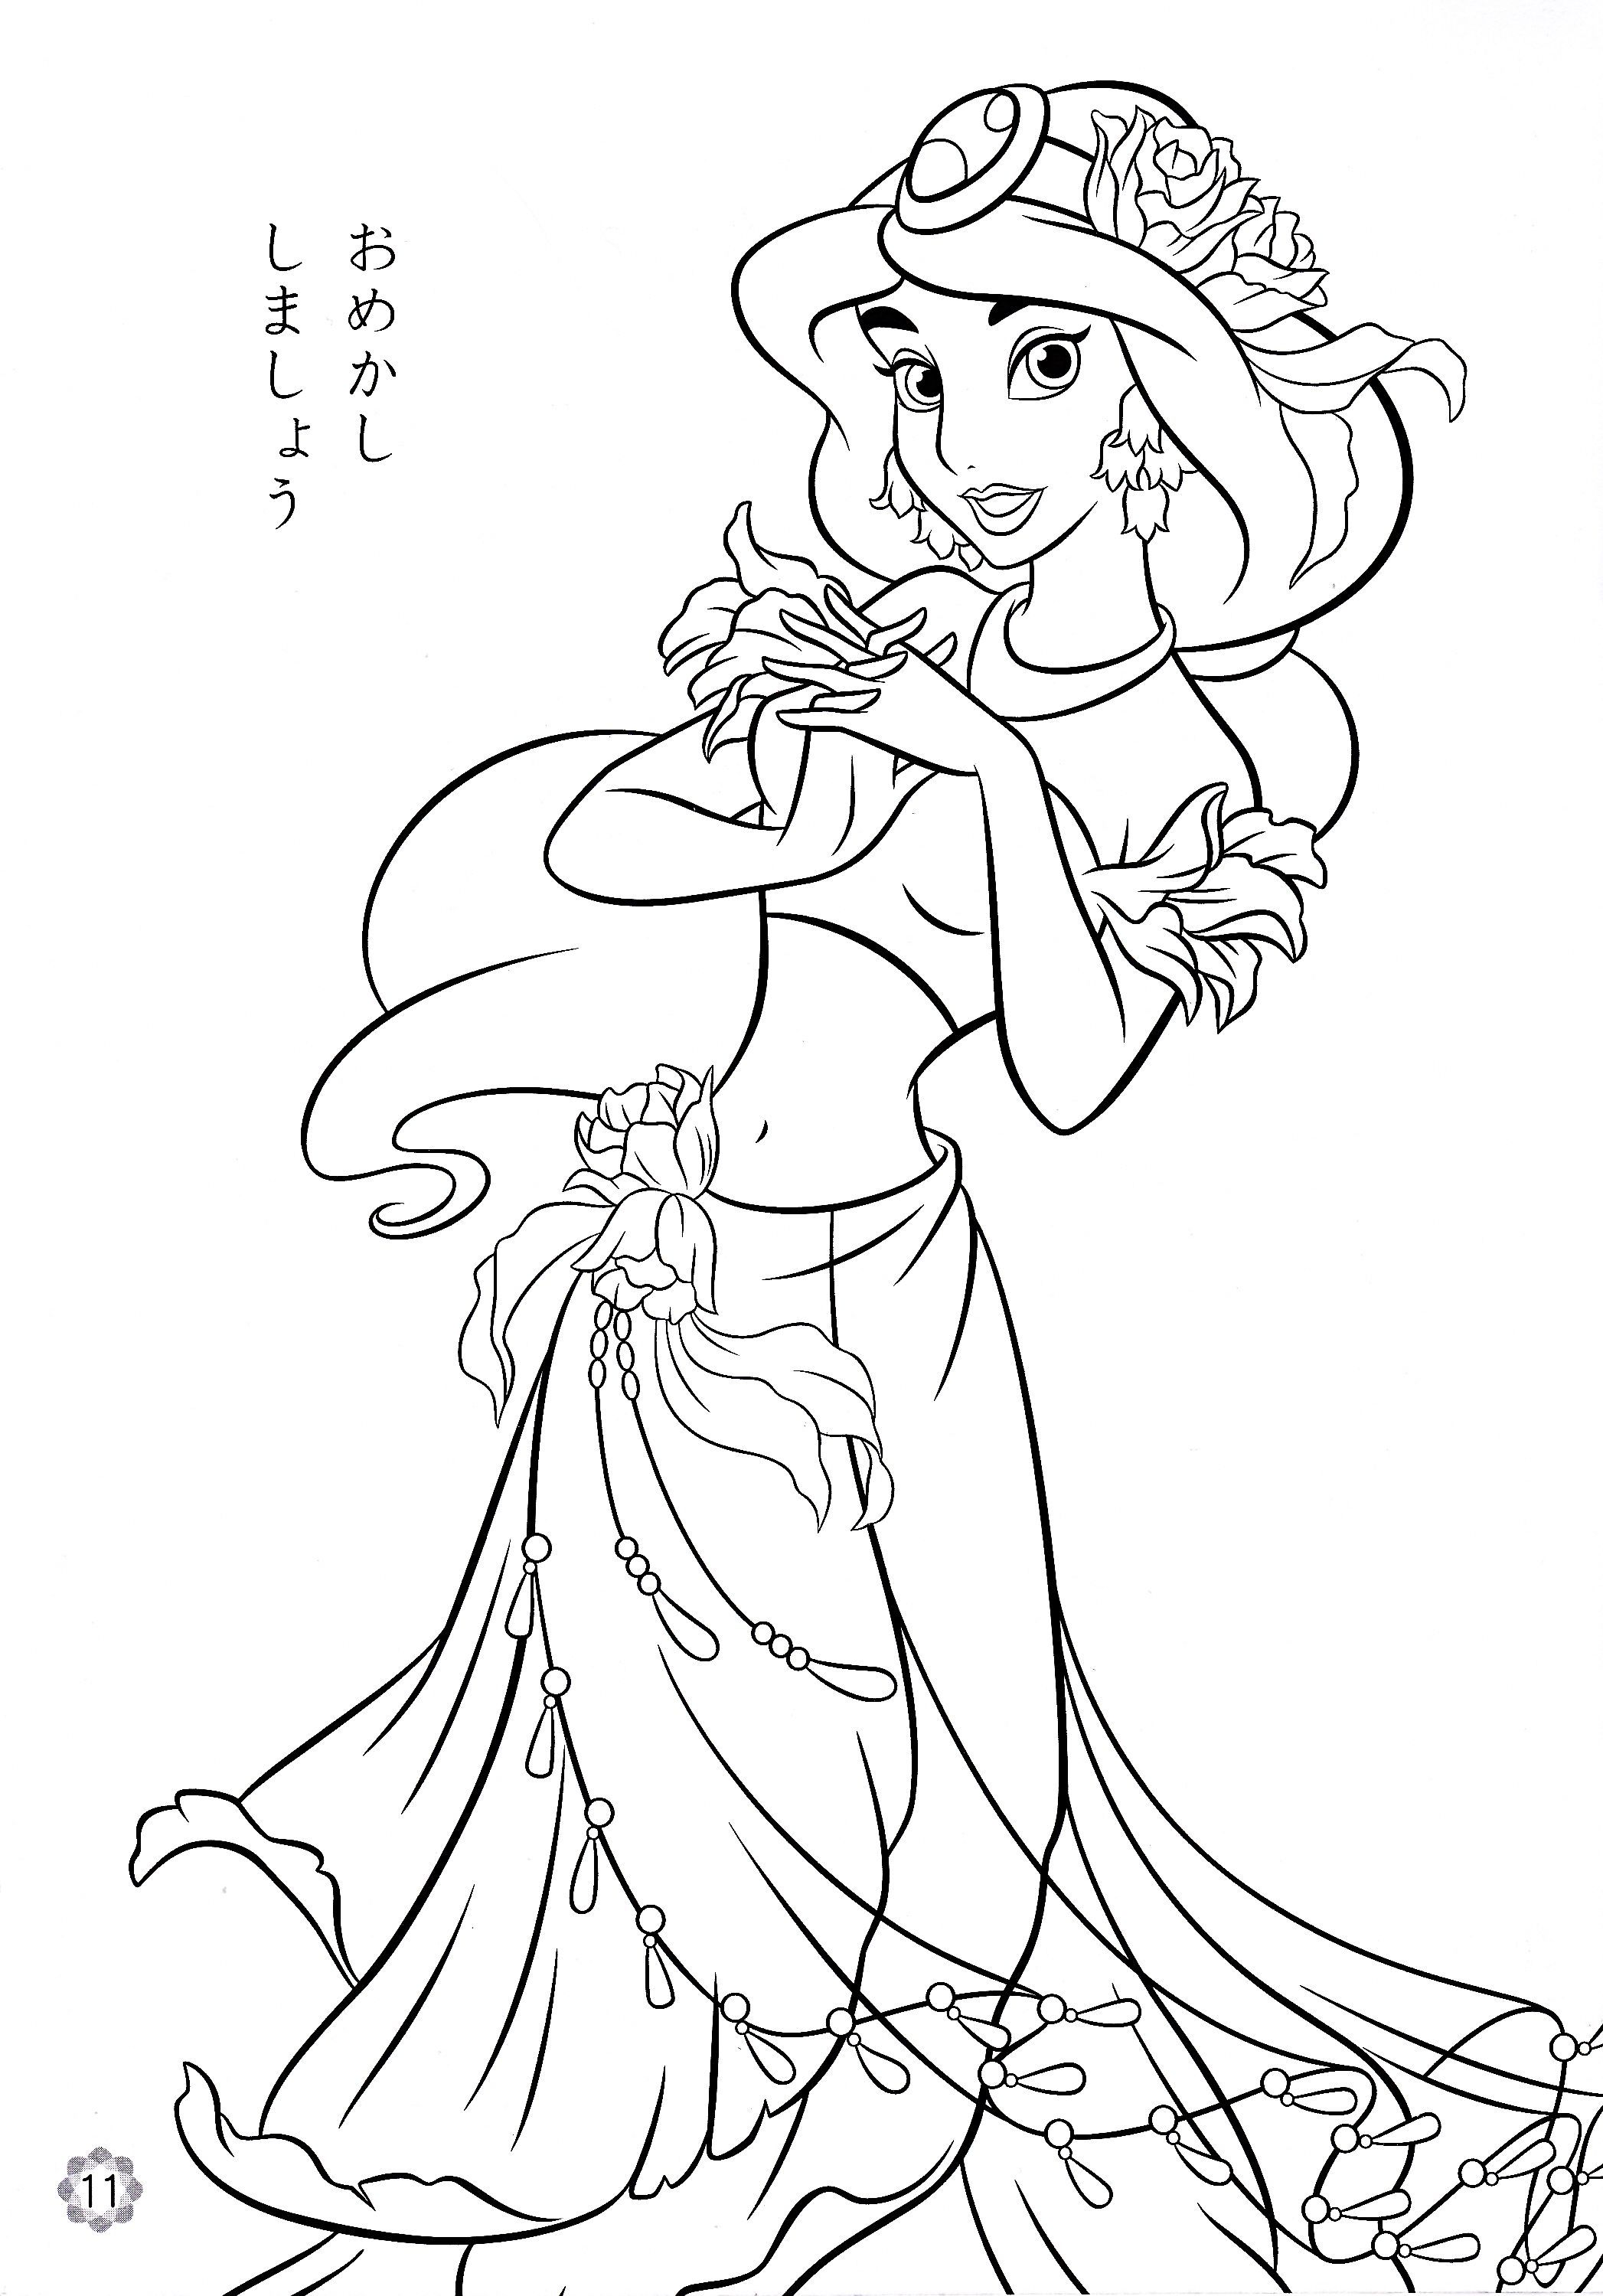 Disney Coloring Pages Is A Web That Contains A Collection Of | Disney  princess coloring pages, Mermaid coloring pages, Disney coloring pages